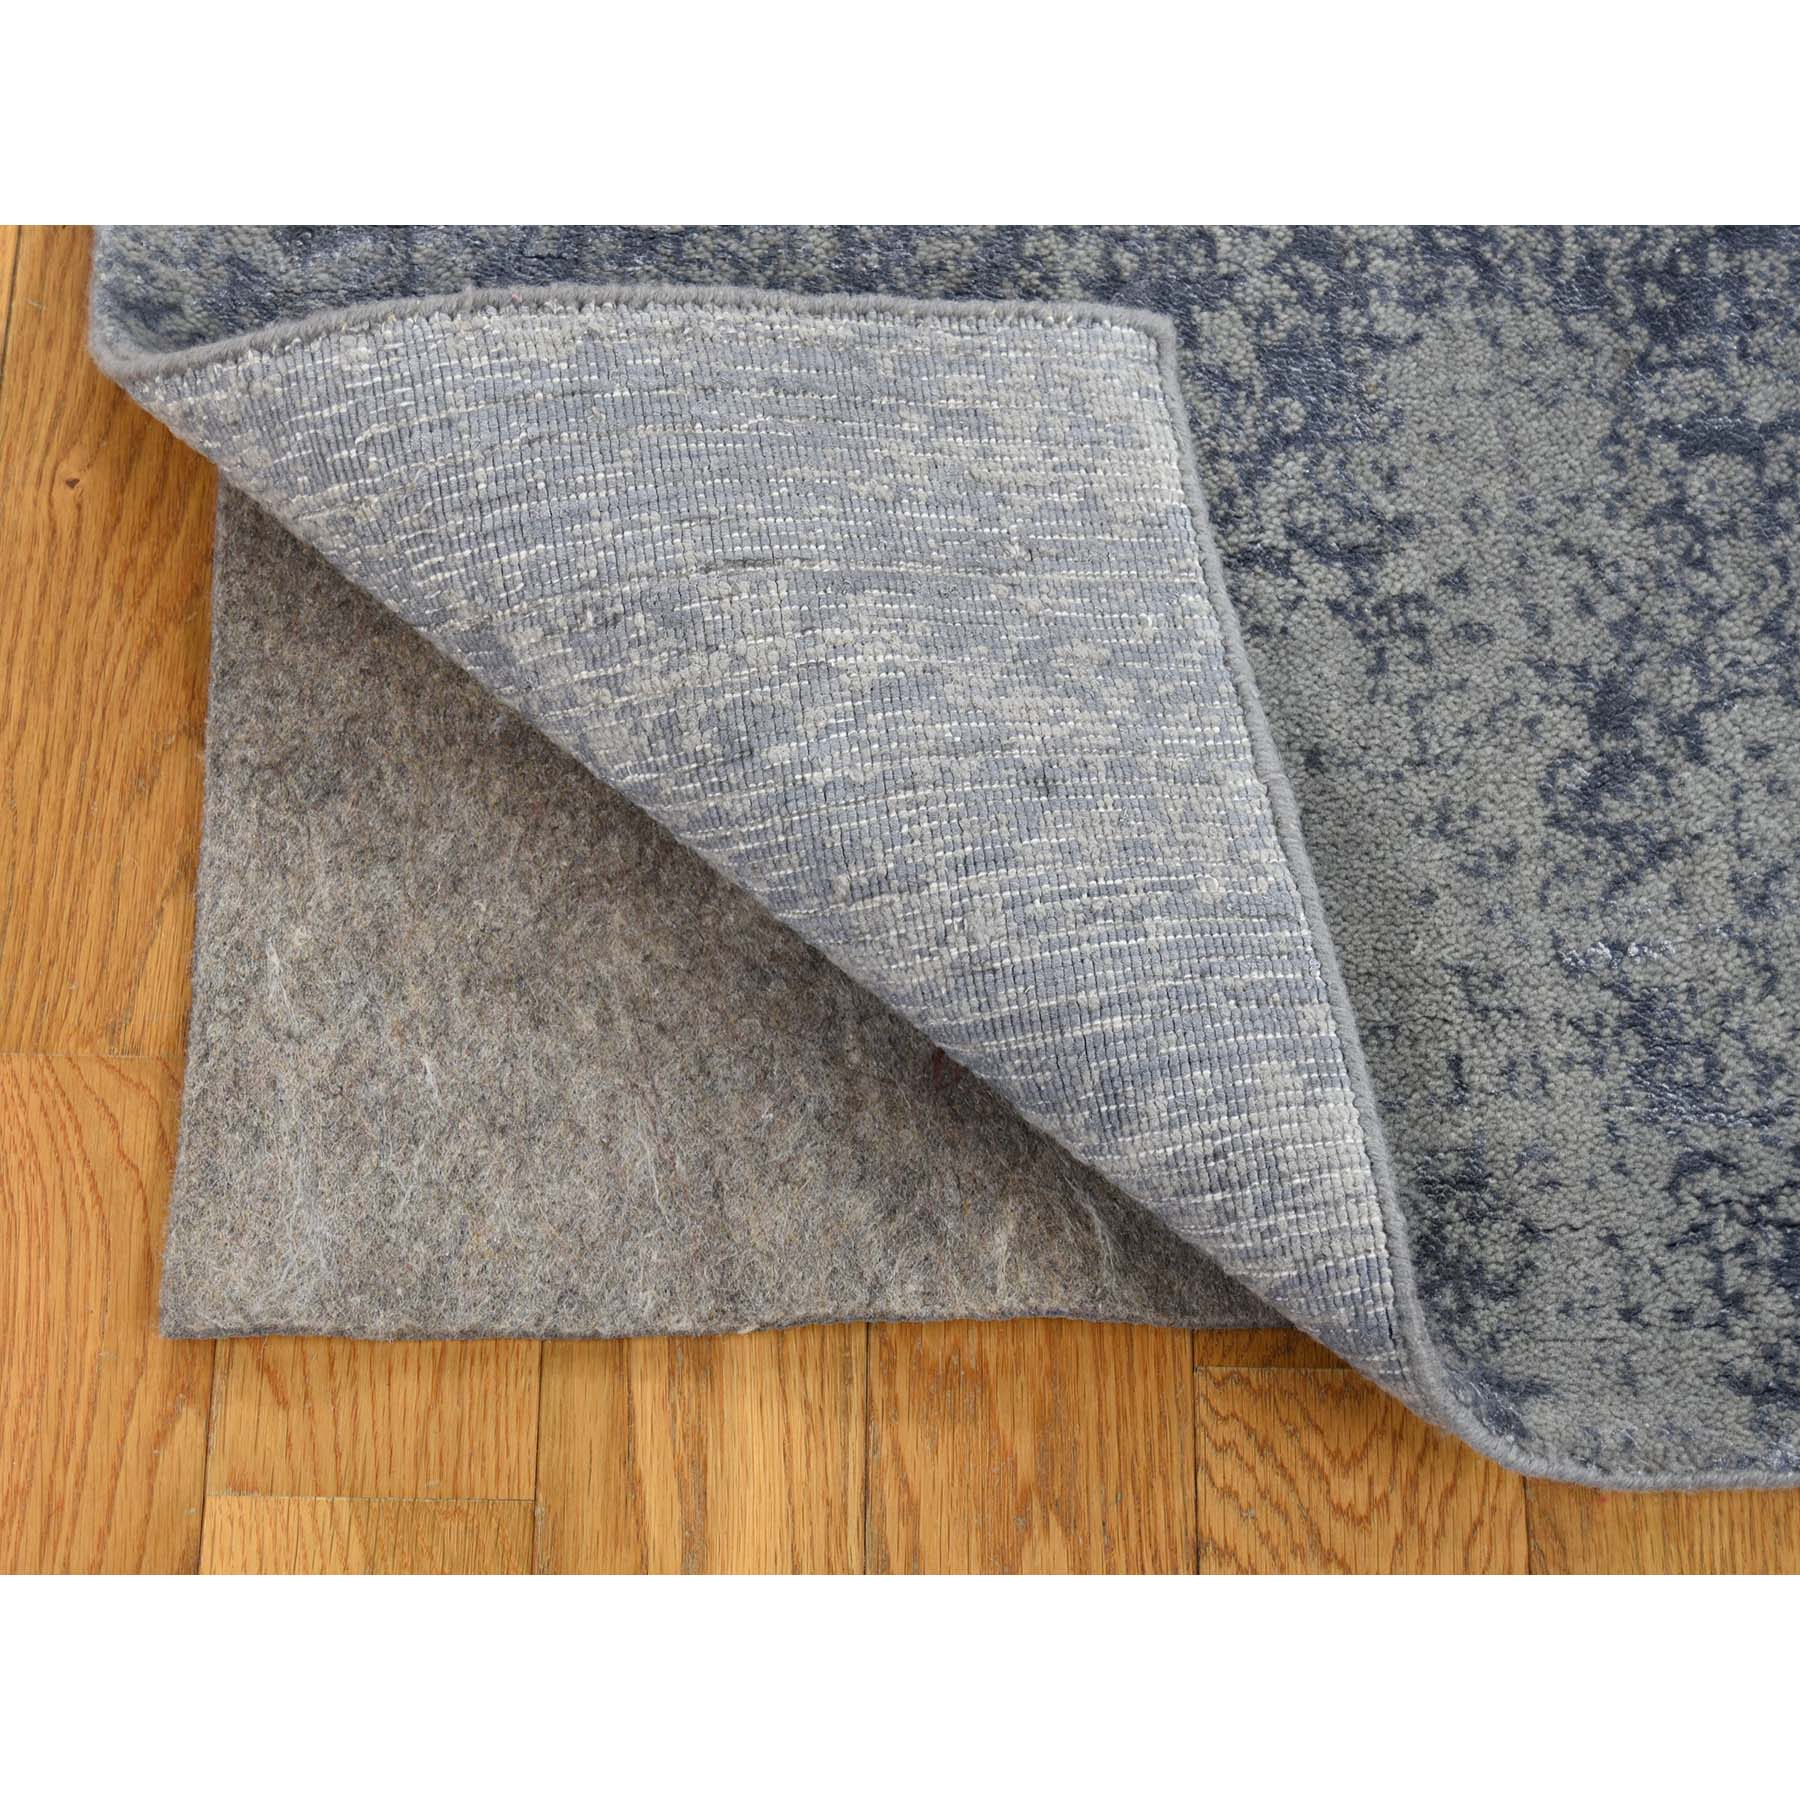 2-x3- Abstract Design Tone on Tone Wool and Silk Hand-Loomed Oriental Rug